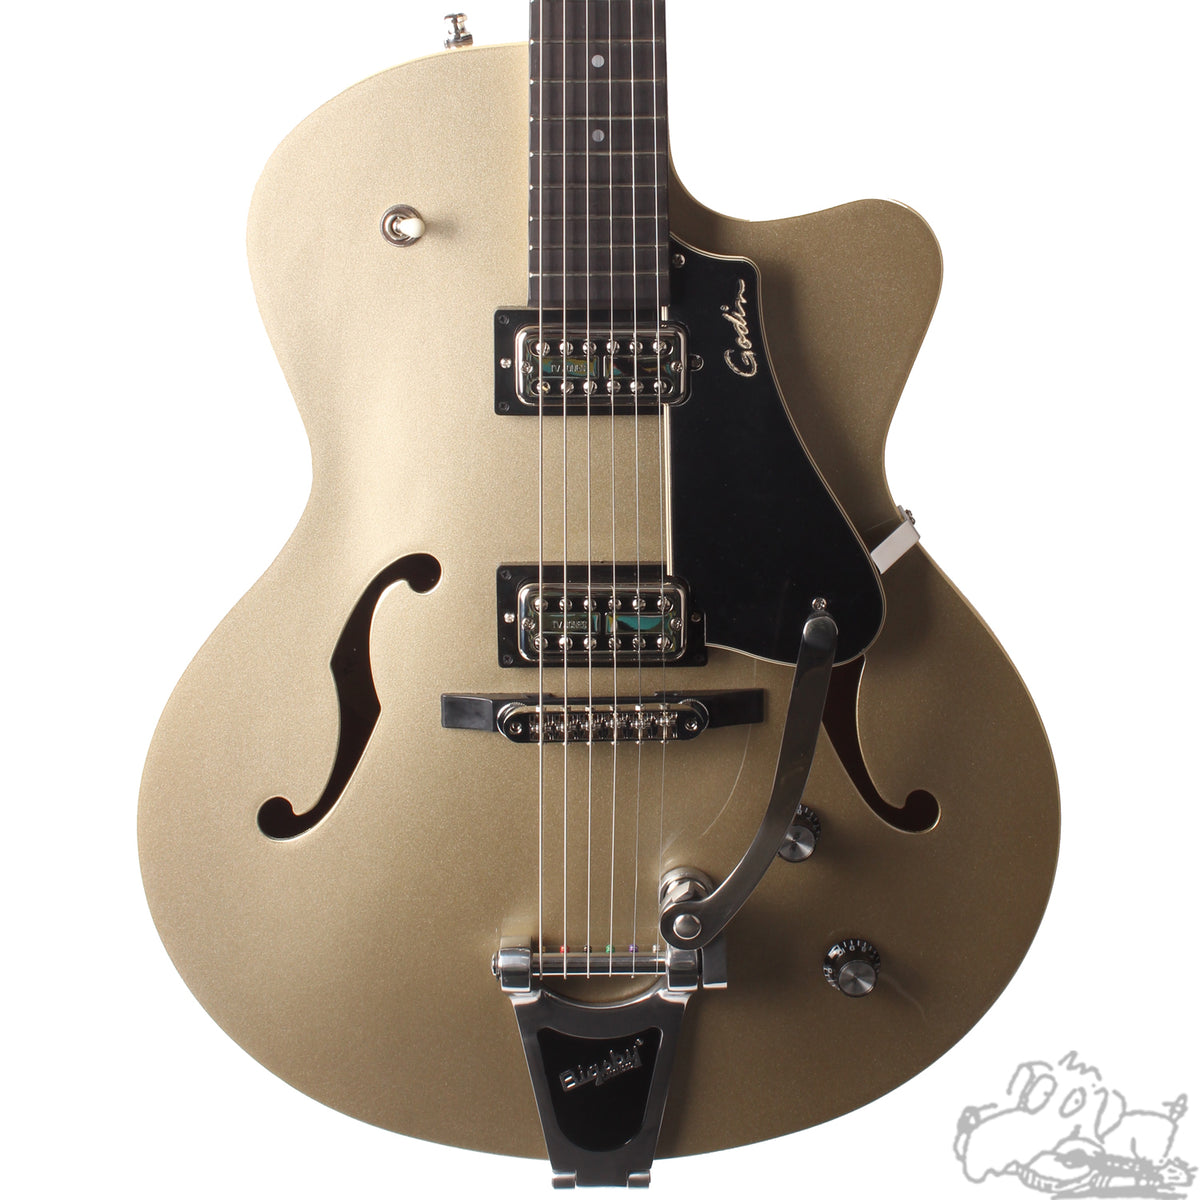 Godin 5th Avenue Uptown GT Ltd in Silver/Gold - Store Demo Model